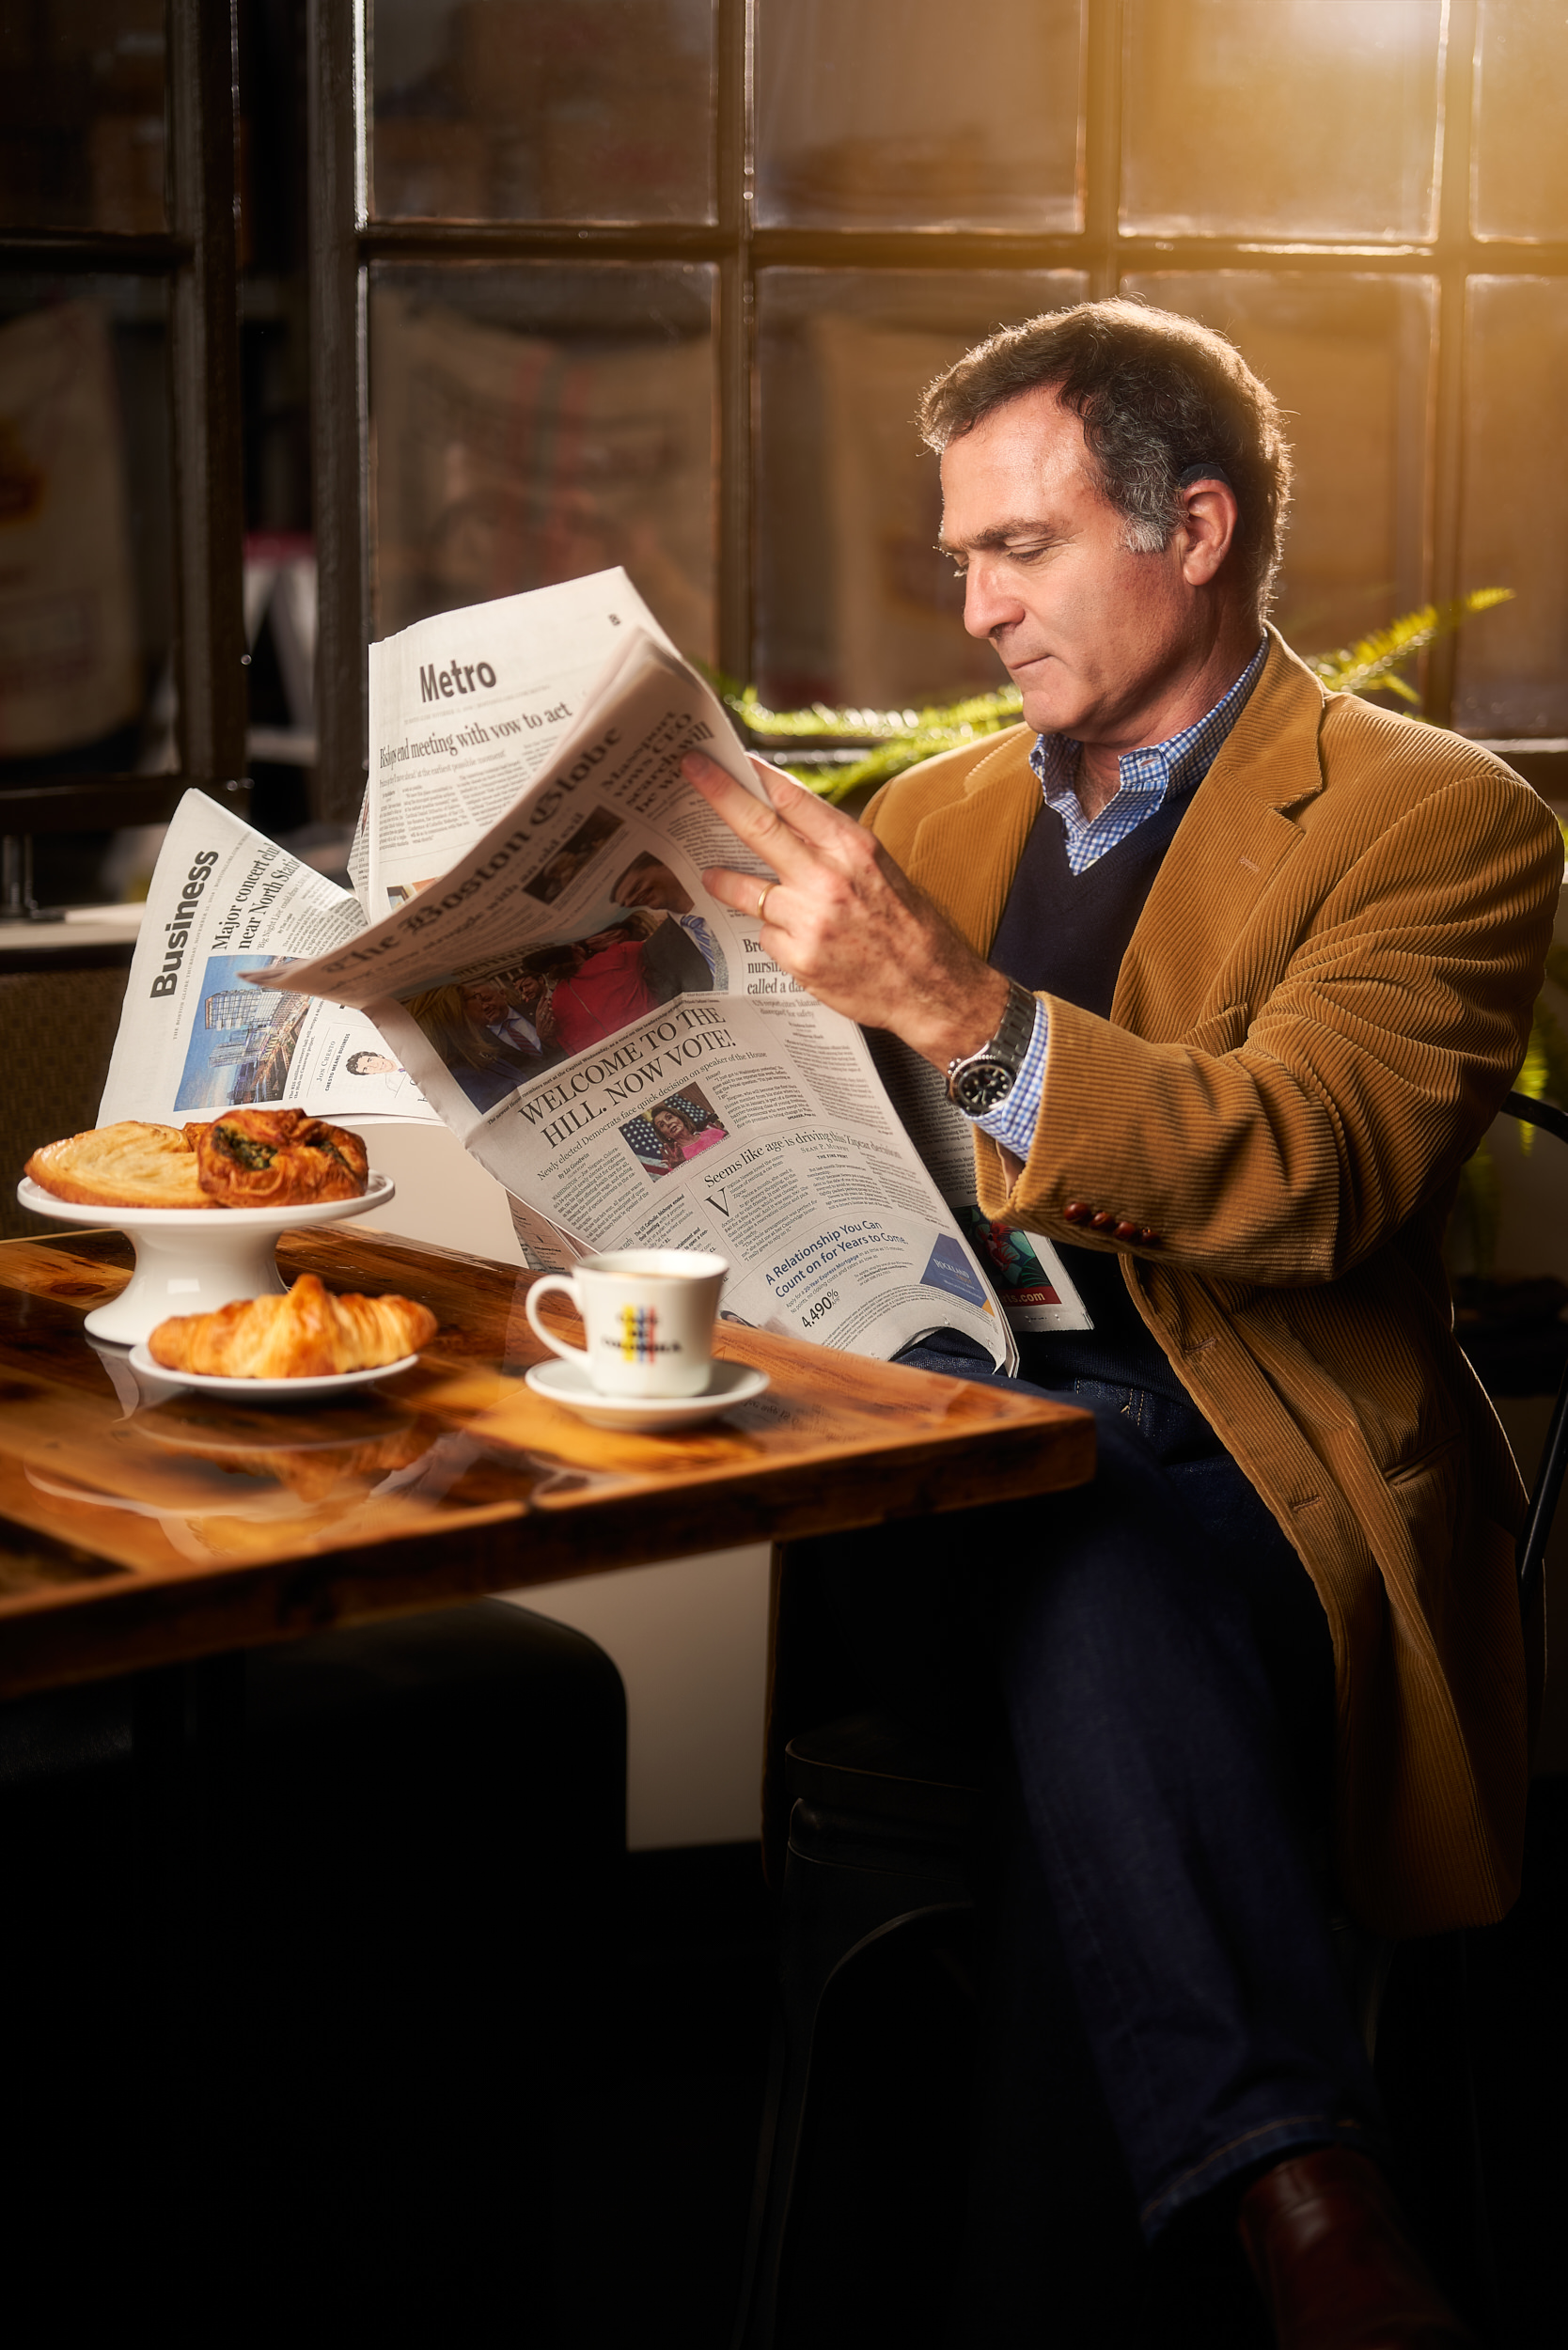 Professional staged picture of a man having breakfast and reading the news paper. For breakfast he is having coffee, croissant and other pastry